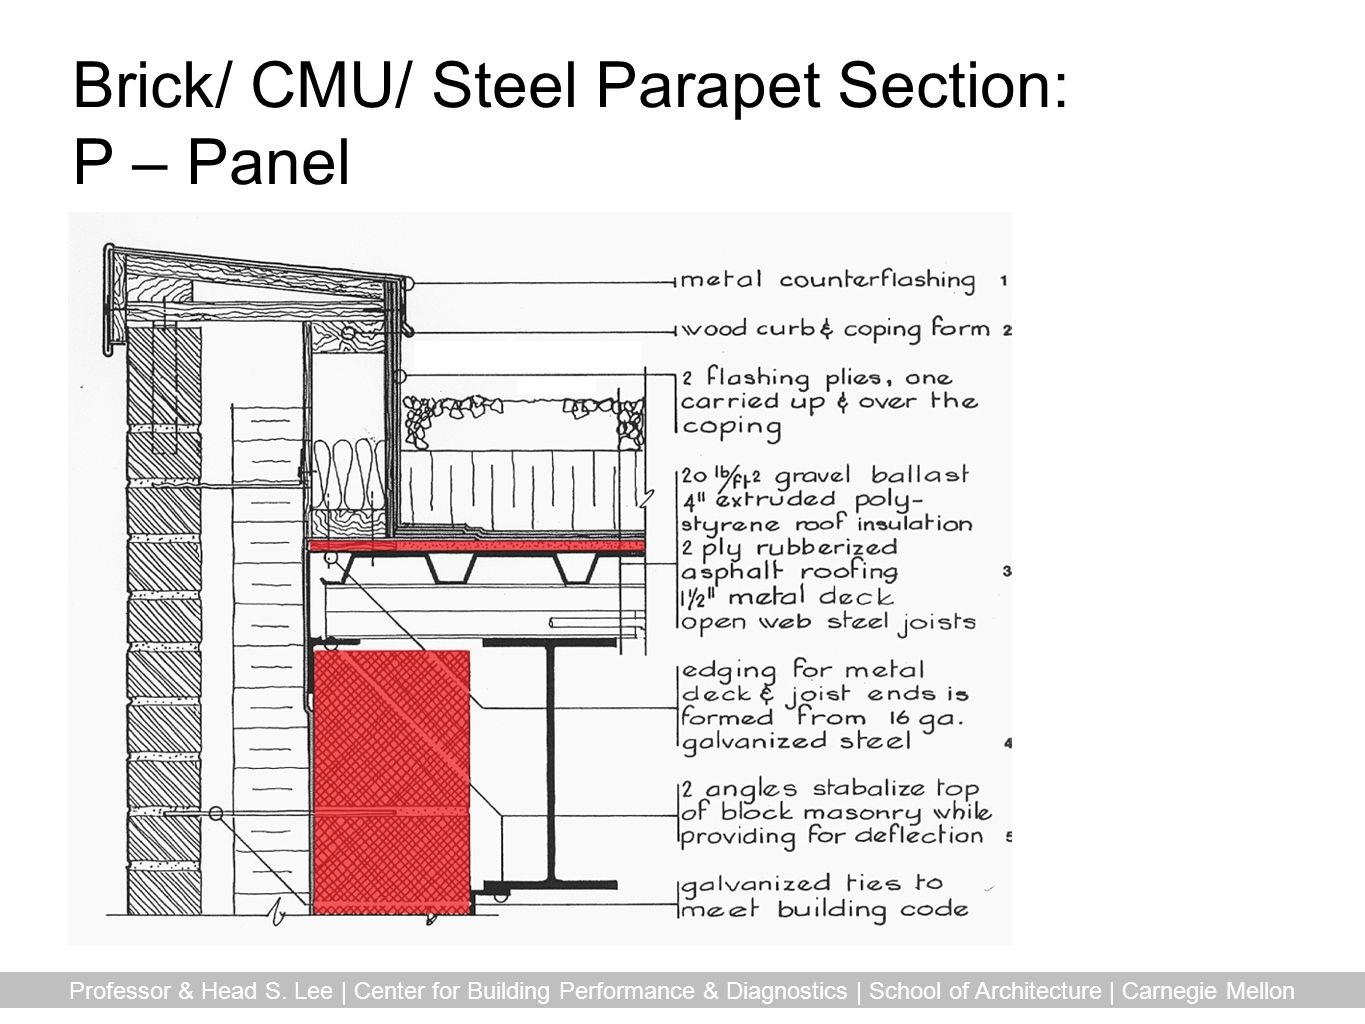 Brick/ CMU/ Steel Parapet Section: P – Panel